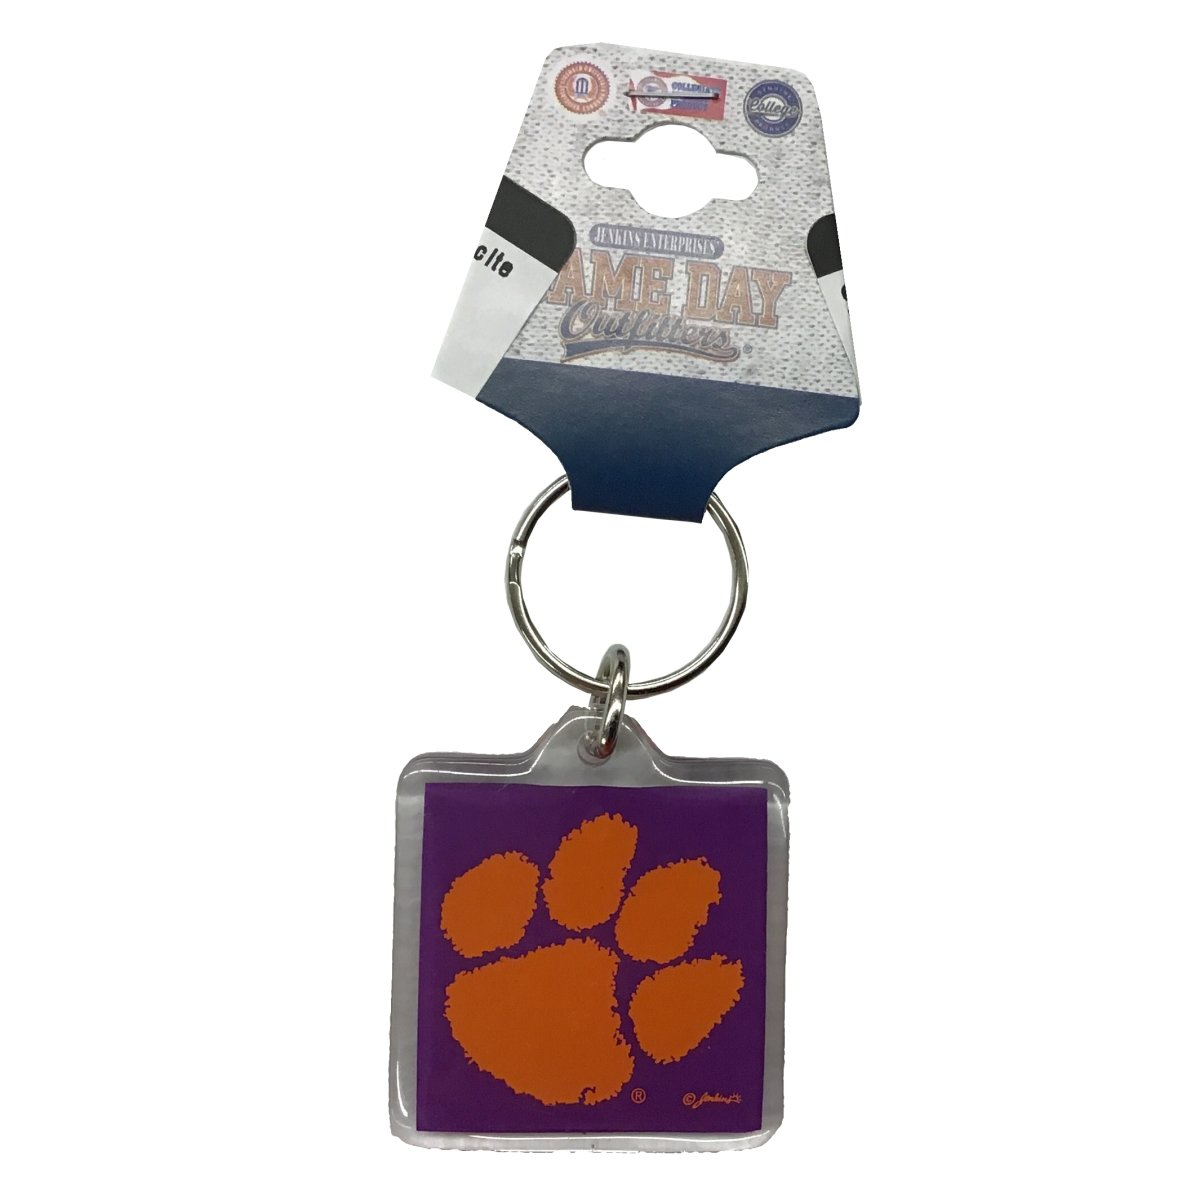 Keychain Lucite Square Purple With Orange Paw - Mr. Knickerbocker